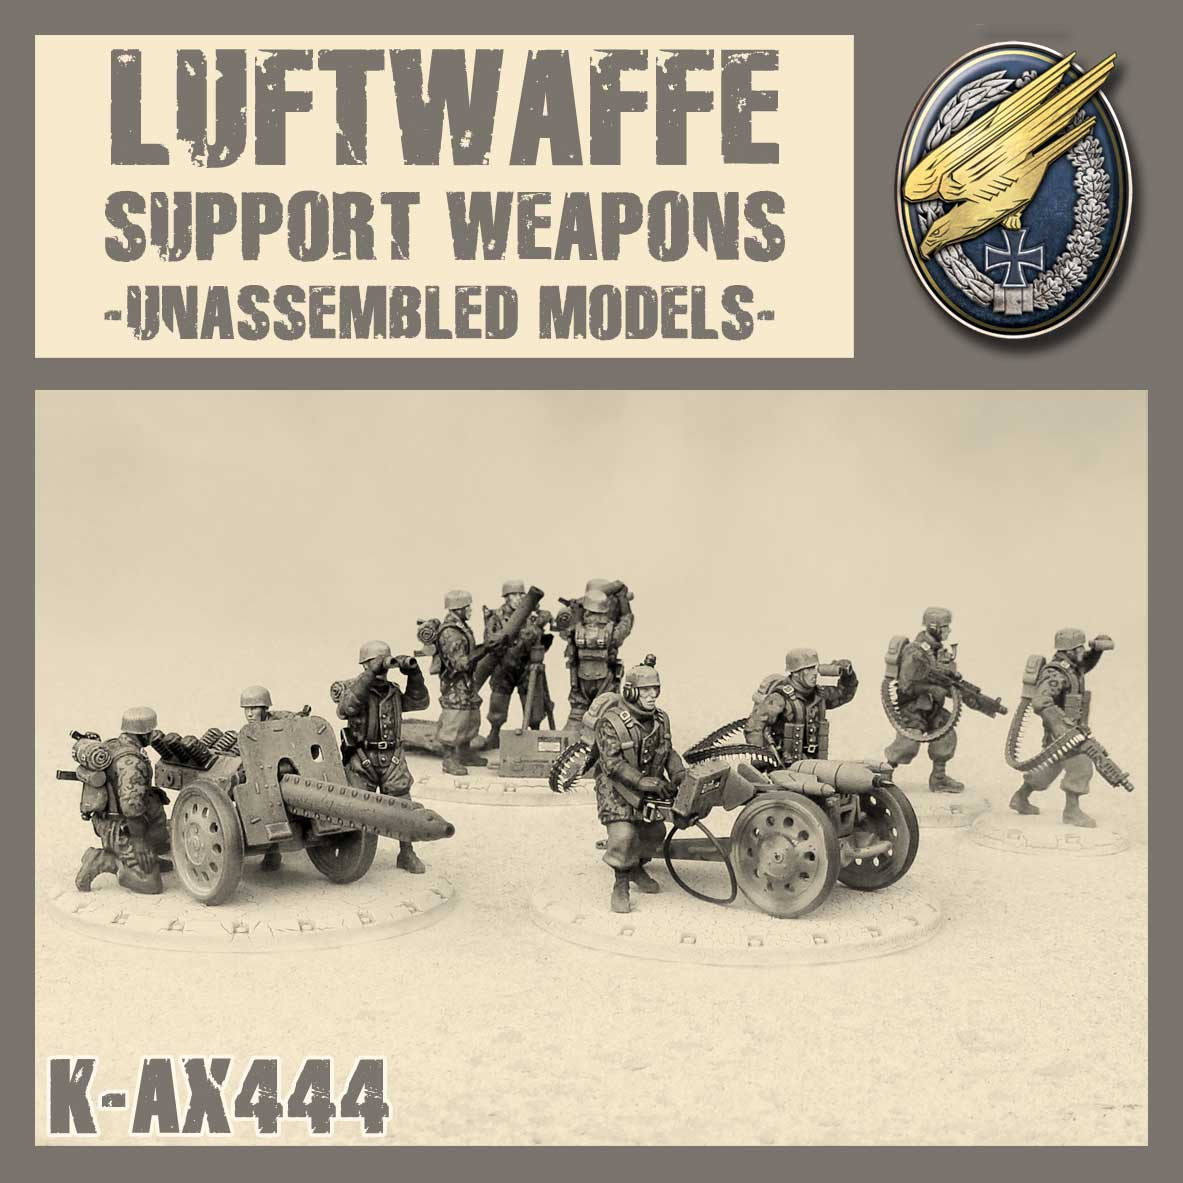 Luftwaffe Support Weapons Kit